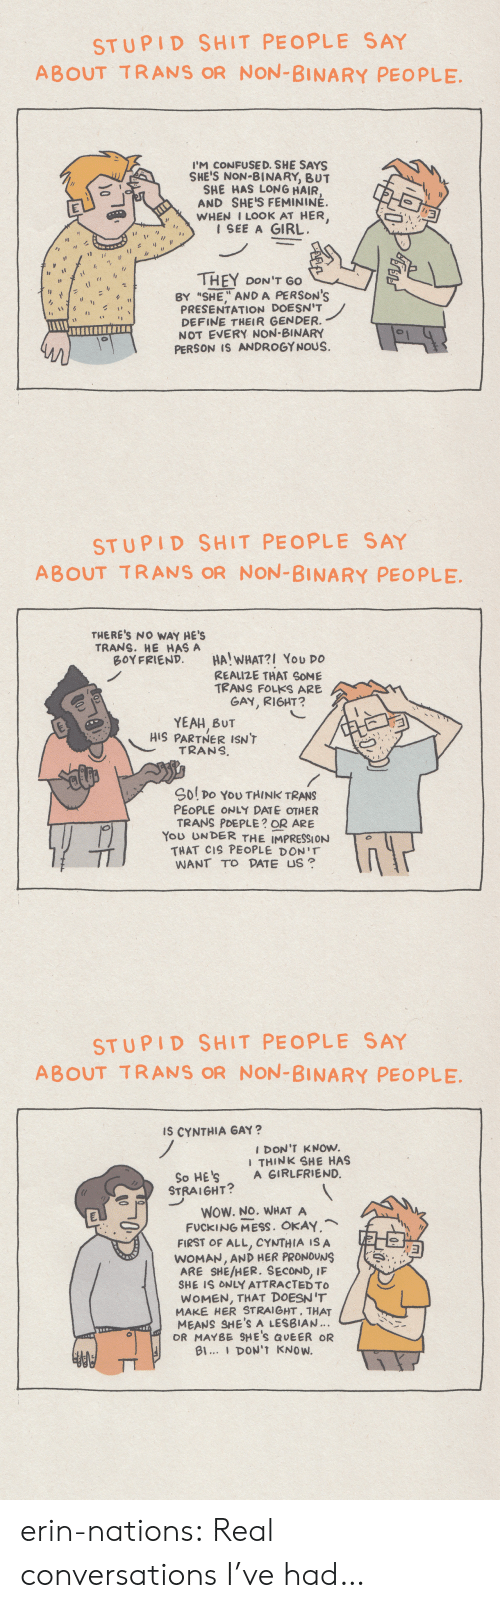 "First Of All: STUPID SHIT PEOPLE SAY  ABOUT TRANS OR NON-BINARY PEOPLE  I'M CONFUSE D. SHE SAYS  SHE'S NON-BINARY, BUT  SHE HAS LONG HAIR  AND SHE'S FEMININÉ.  WHEN I LOOK AT HER,  1 SEE A GIRL  THEY DON'T GO  BY ""SHE"" AND A PERSON'S  PRESENTATION DOESN'T  DEFINE THEIR GENDER.  NOT EVERY NON-BINARY  PERSON IS ANDROGYNOUS.  1  0   STUPID SHIT PEOPLE SAY  ABOUT TRANS OR NON-BINARY PEOPLE  THERE'S NO WAY HE'S  TRANS. HE HAS A  BOYFRIEND  HA! WHAT?I You DO  REAIZE THAT SOME  TRANS FOLKS ARE  GAY, RIGHT?  YEAH BUT  HIS PARTNER ISN'T  TRANS  Sol po YoU THINK TRANS  PEOPLE ONLY DATE OTHER  TRANS PDEPLE? OR ARE  You UNDER THE IMPRESSION  THAT CIS PEOPLE DON'T  WANT TO DATE US   STUPID SHIT PEOPLE SAY  ABOUT TRANS OR NON-BINARY PEOPLE  Is CYNTHIA GAY?  I DON'T KNOW.  I THINK SHE HAS  A GIRLFRIEND.  So HE'S  STRAIGHT?  WOW. NO. WHAT A  FUCKING MESS. OKAY,  FIRST OF ALL, CYNTHIA IS A  WOMAN, AND HER PRONOUNS  IF  ARE SHE/HER. SECOND,  SHE IS ONLY ATTRACTED TO  WOMEN, THAT DOESN'T  MAKE HER STRAIGHT, THAT  MEANS SHE'S A LESBIAN.  OR MAYBE SHE'S QUEER OR  Bl... DON'T KNOW. erin-nations:  Real conversations I've had…"